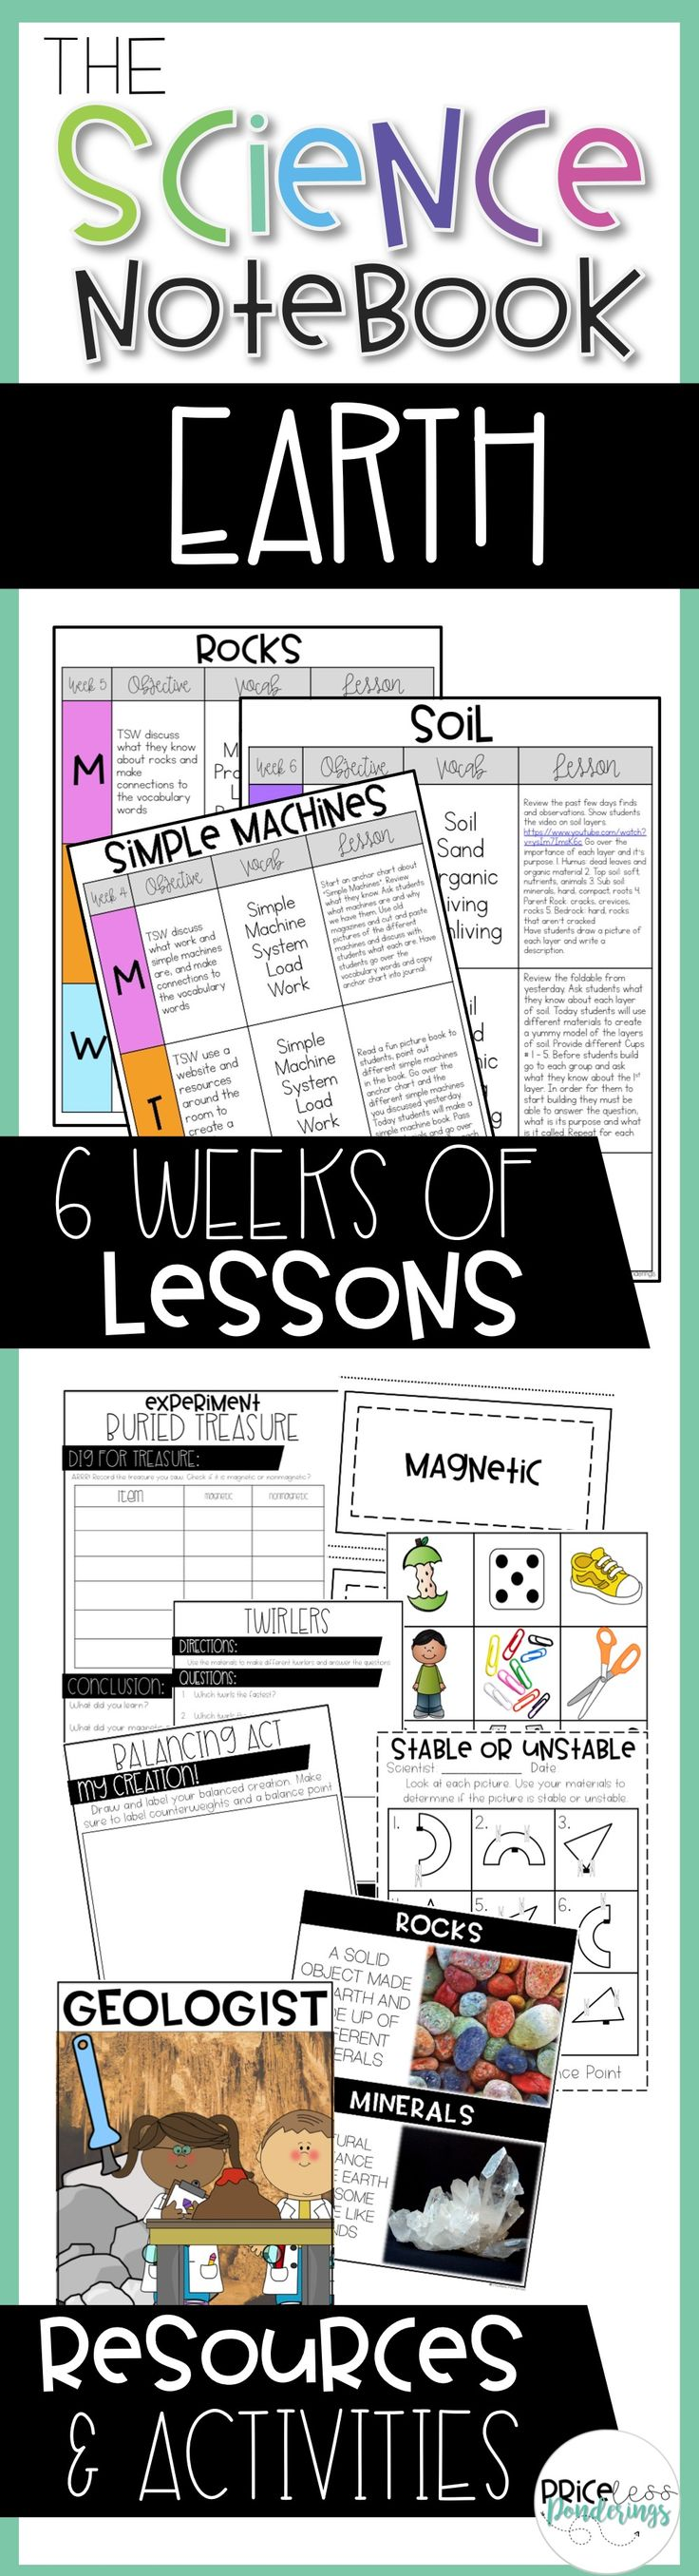 Easy to use lesson plans and resources to tech your students about Magnets, Balance and Gravity, Motion, Simple Machines, Rocks and Soil. This is a teacher time saver!